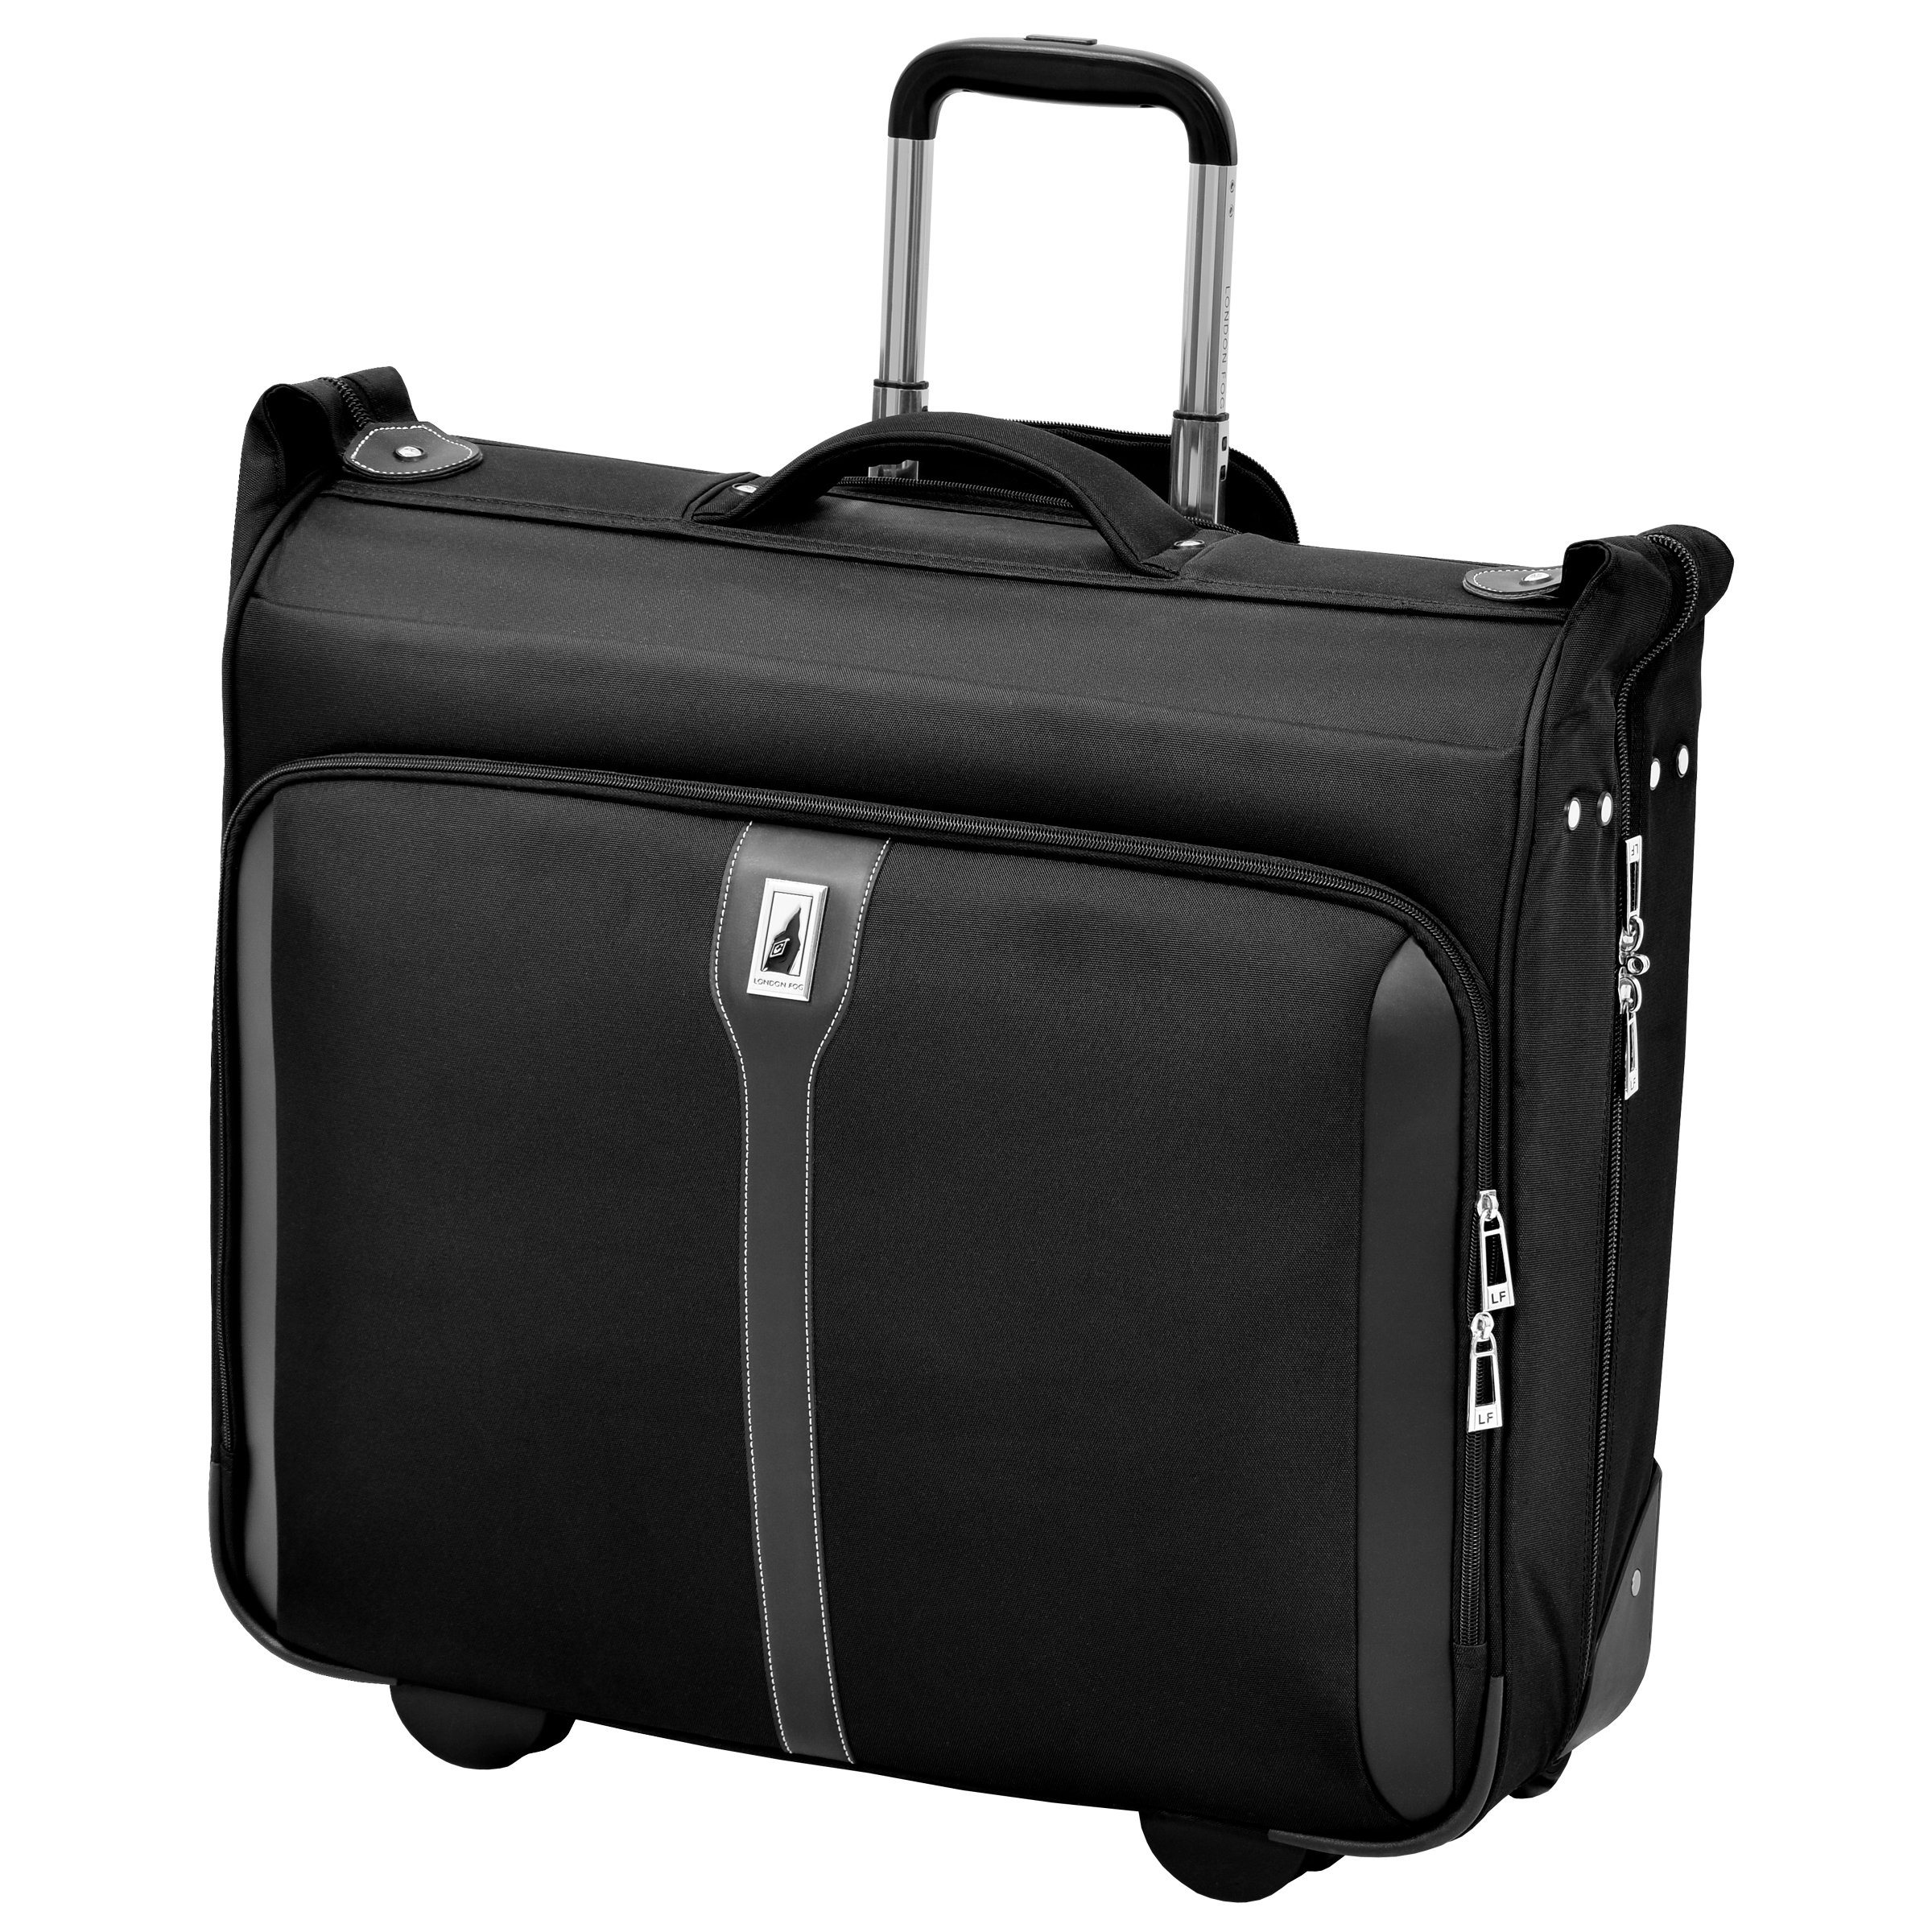 London Fog Knightsbridge 44'' Wheeled Garment Bag, Black by London Fog